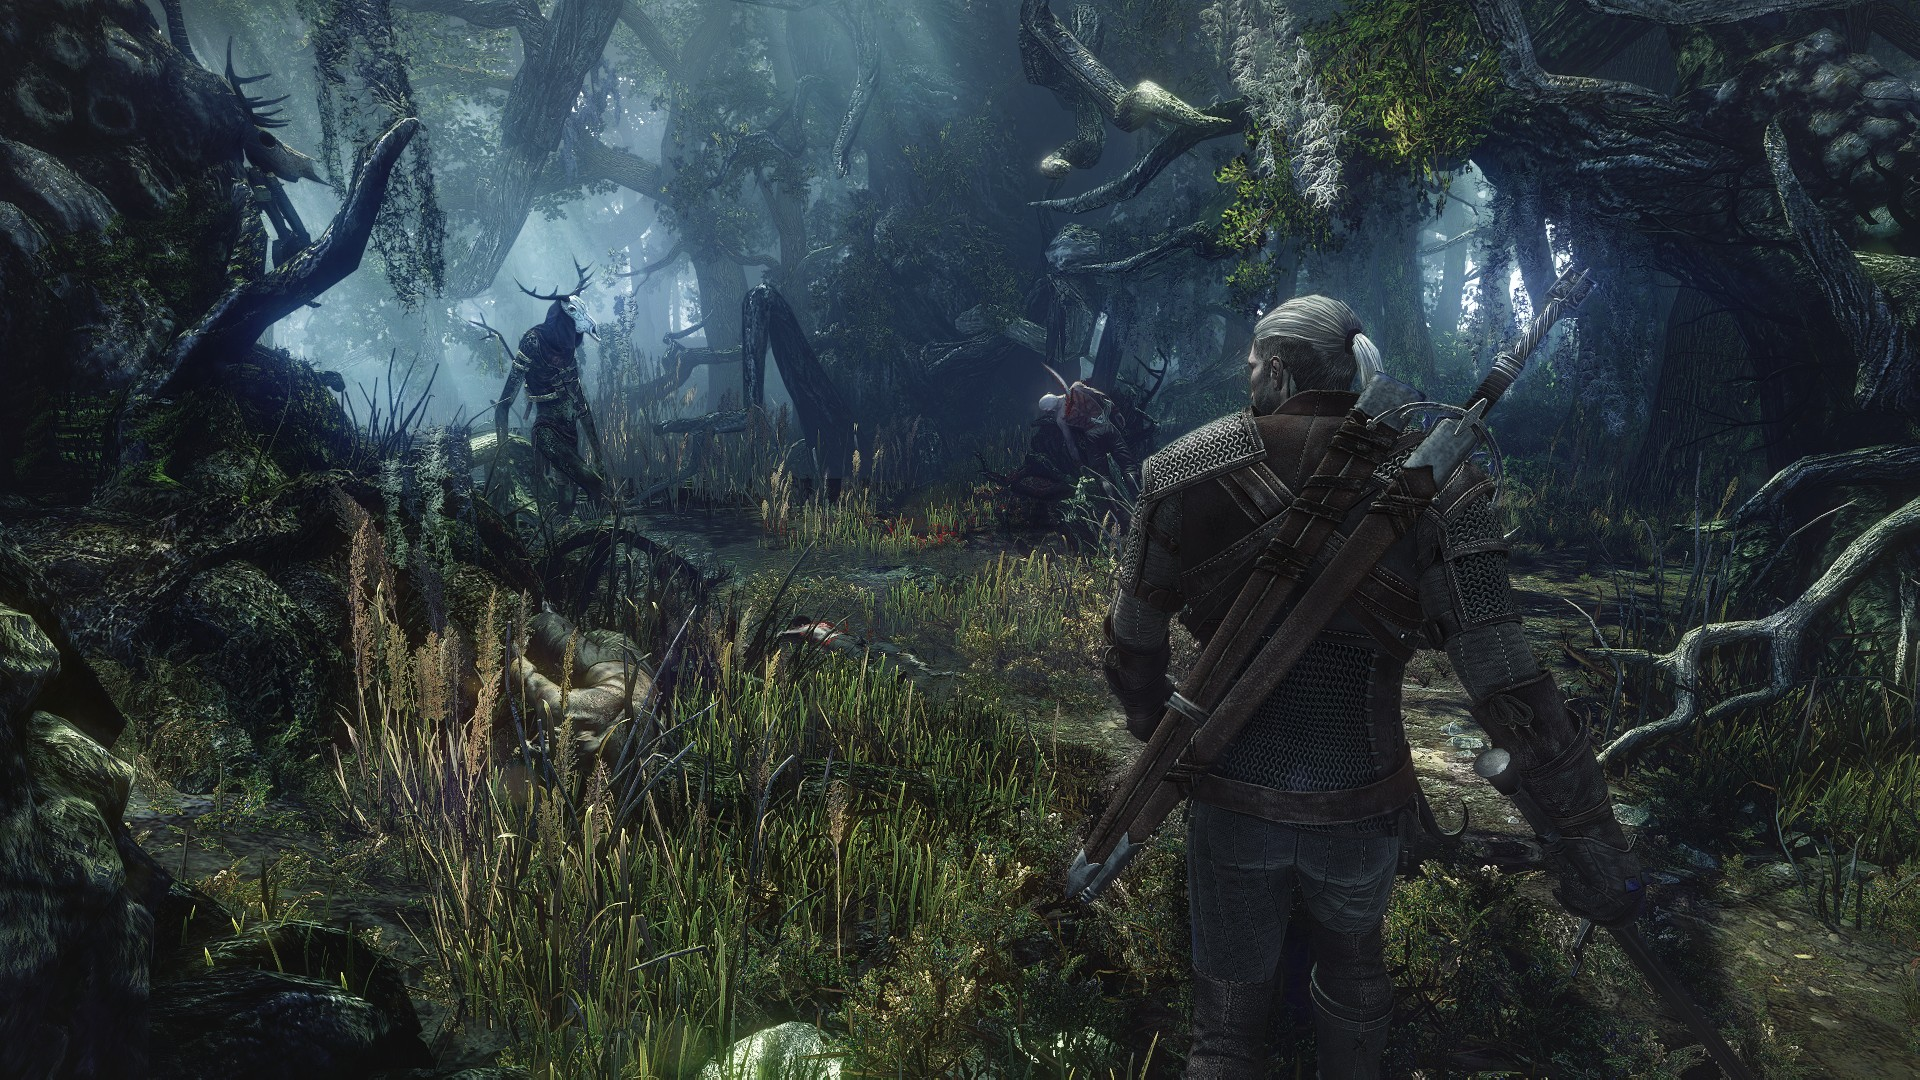 The Witcher 3: Wild Hunt (WB Games)